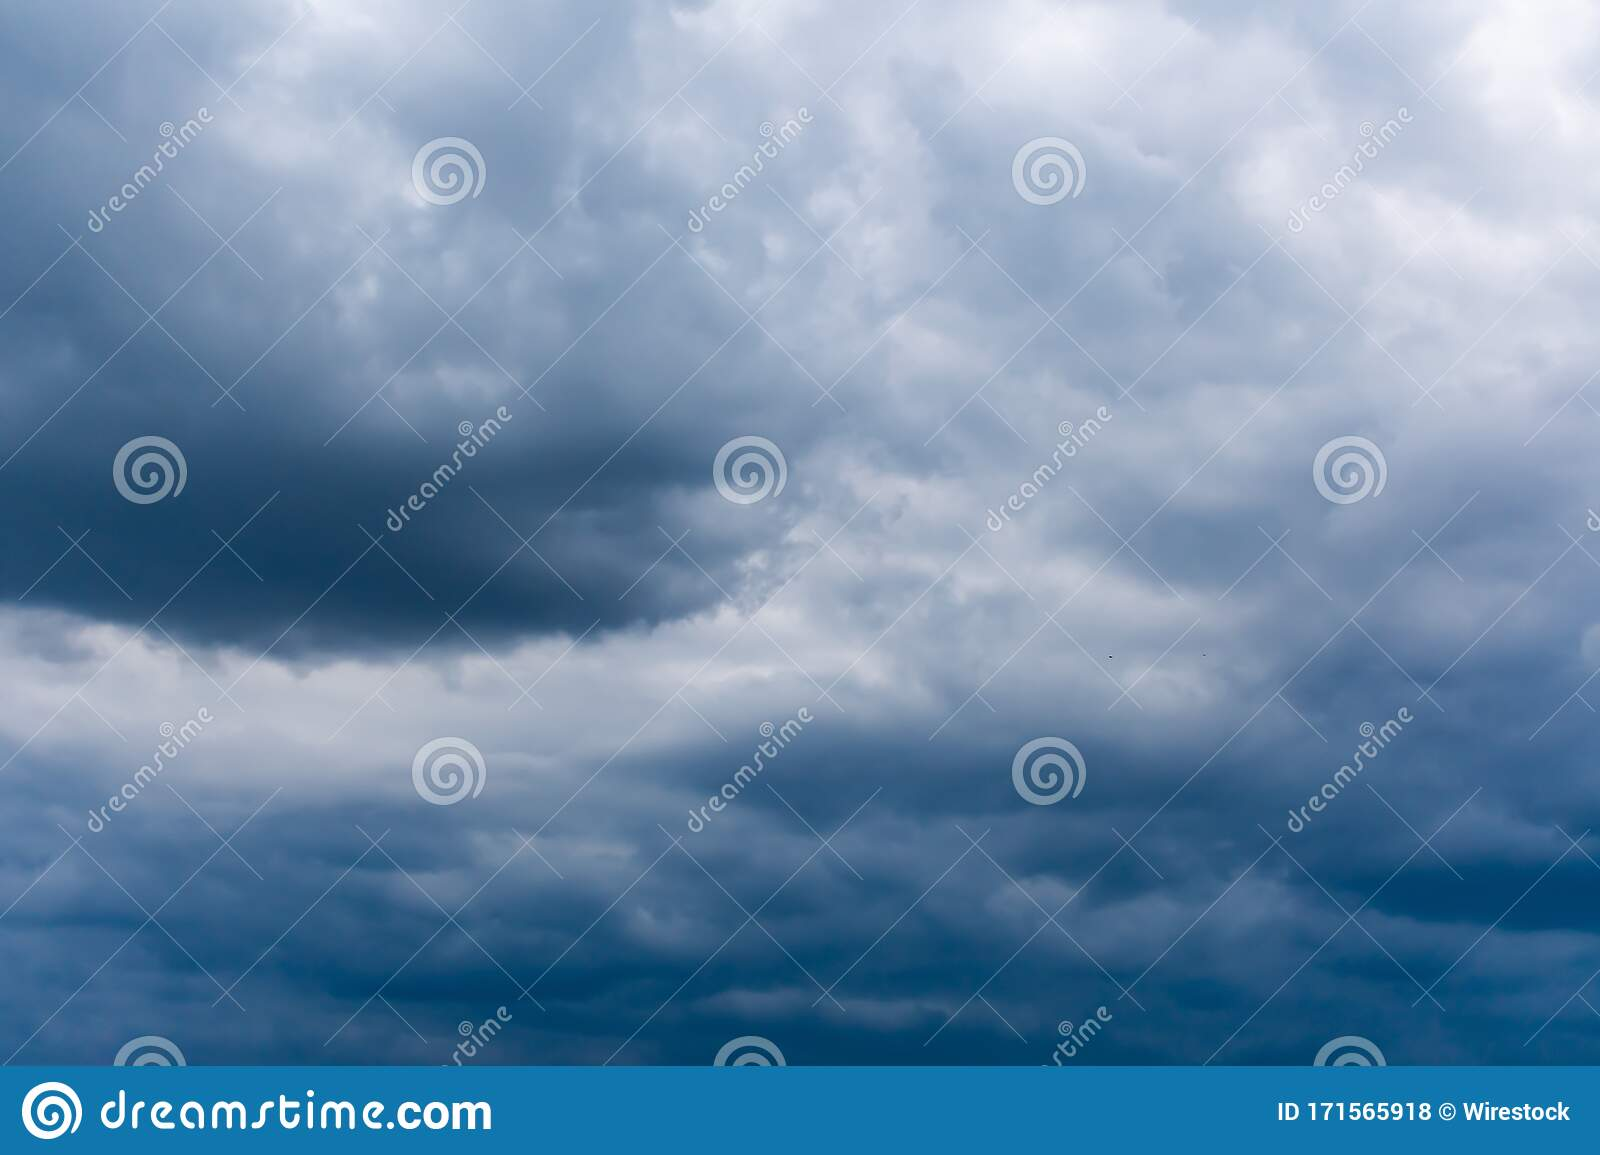 Cloudy Sky During Daytime A Cool Picture For Backgrounds And Wallpapers Stock Photo Image Of Gray Cloudscape 171565918